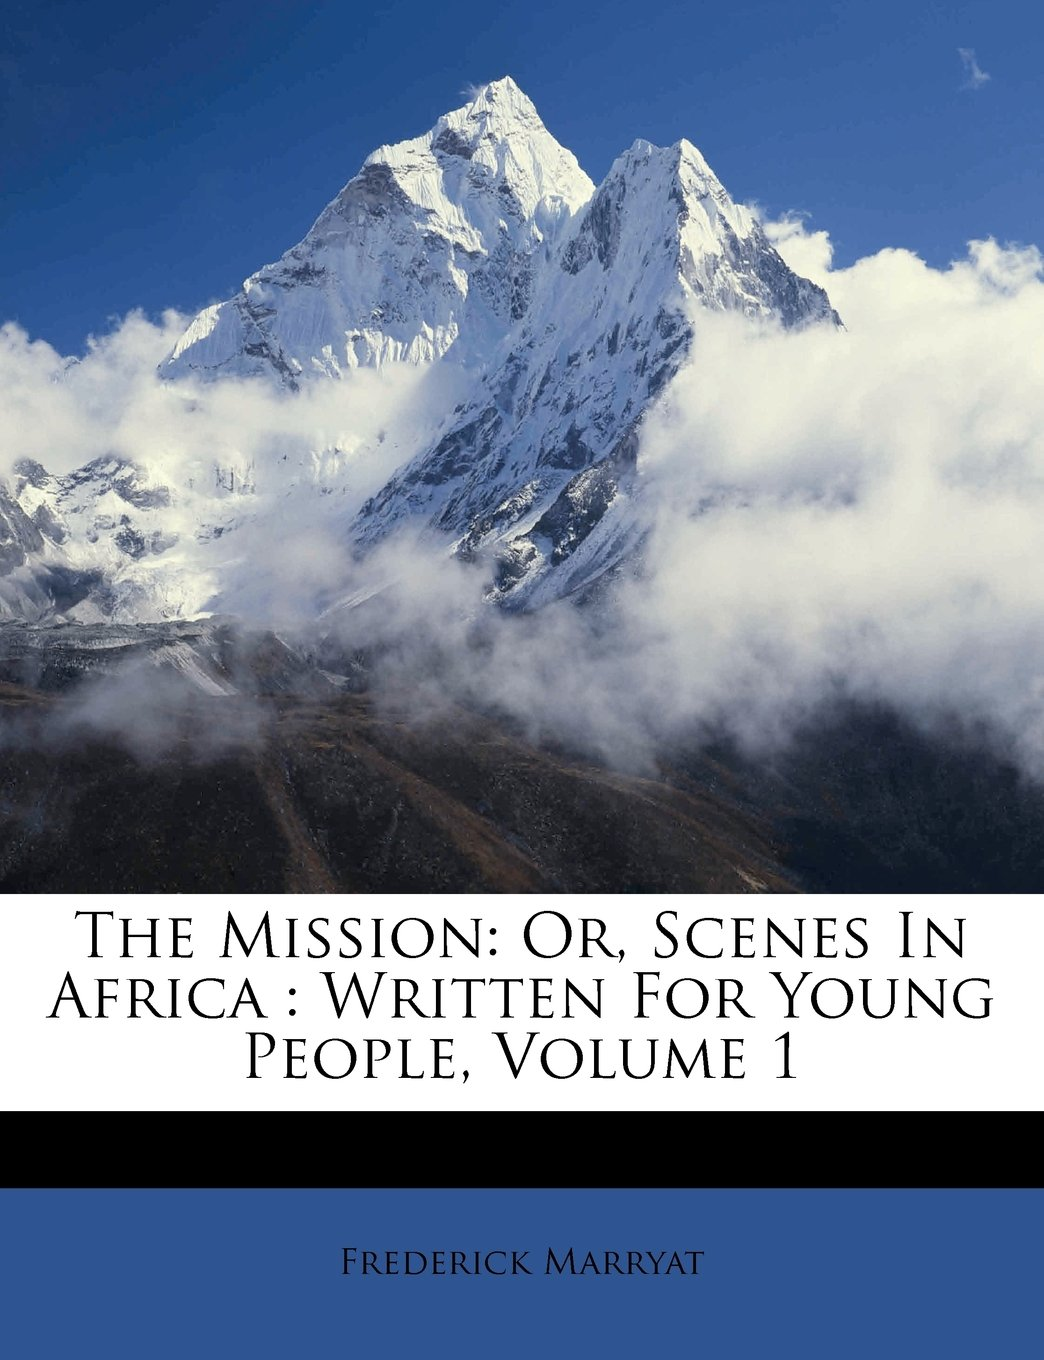 The Mission: Or, Scenes In Africa : Written For Young People, Volume 1 PDF